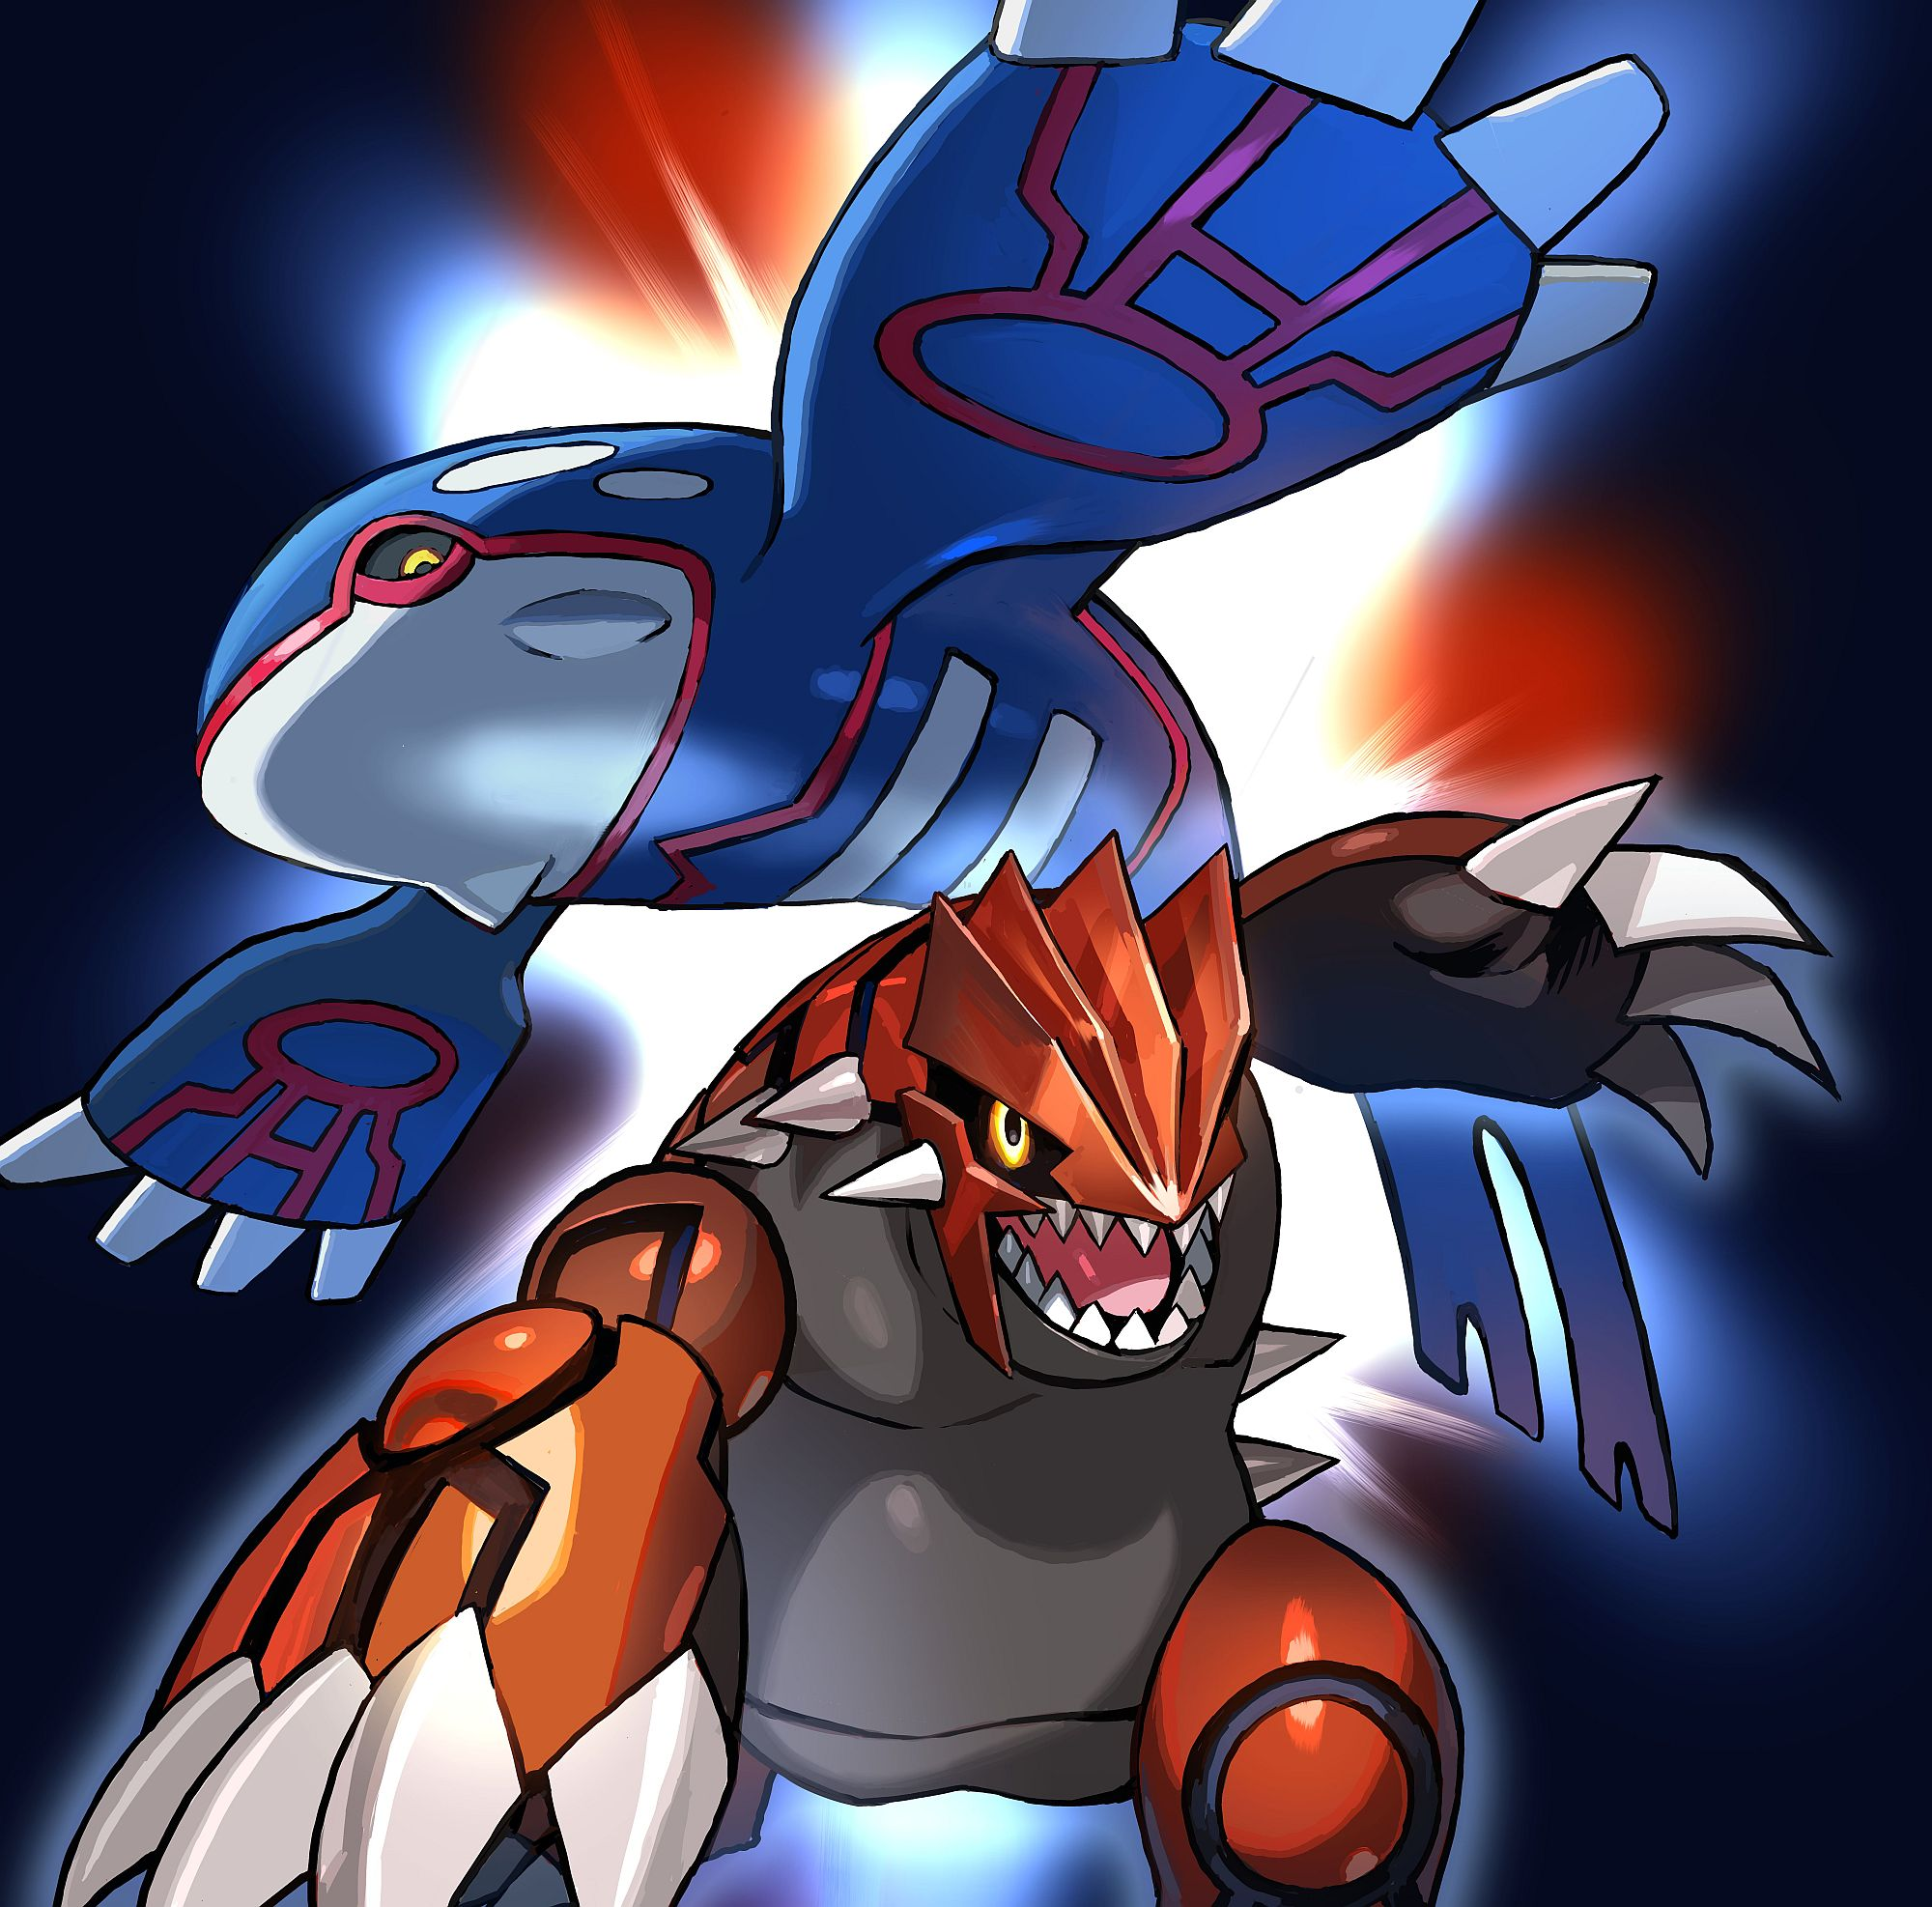 Legendary pokemon kyogre and groudon now available for pokemon sun and moon - Pictures of groudon and kyogre ...